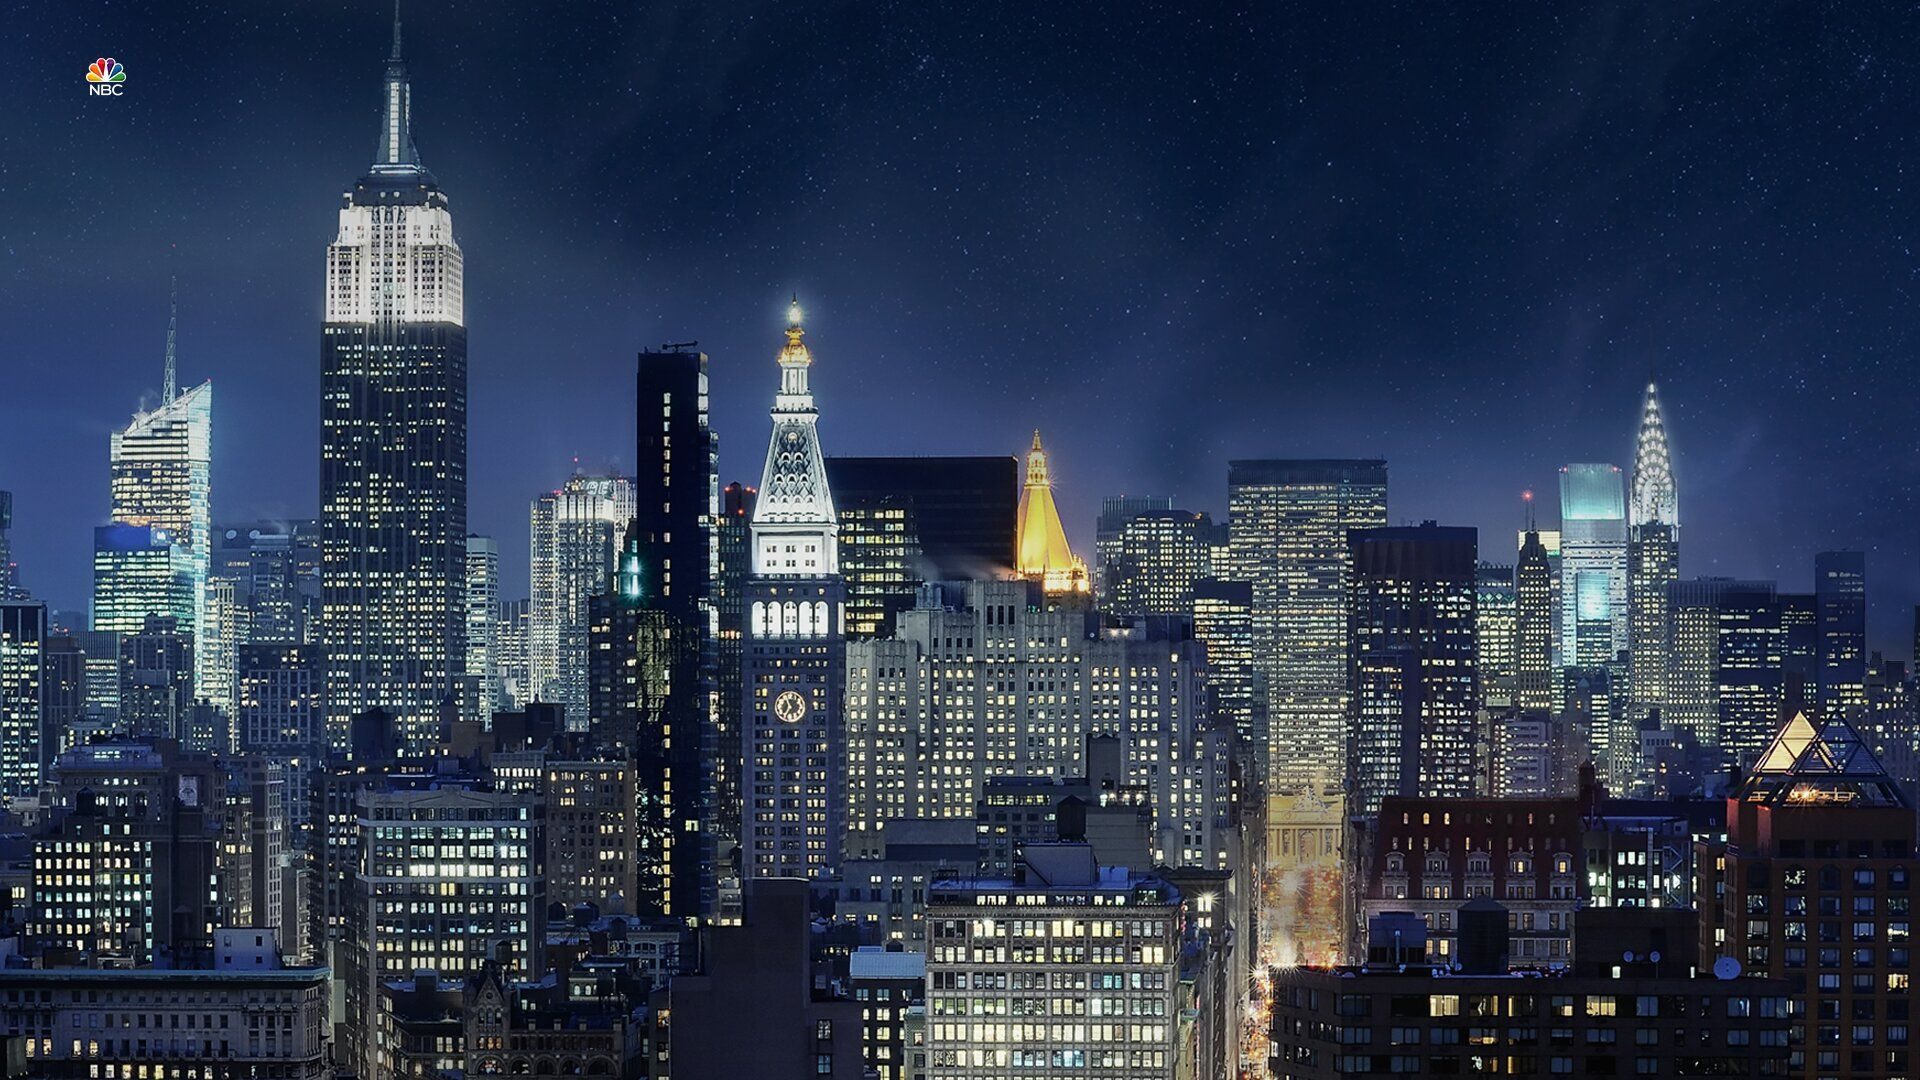 Background Image For The Tonight Show Starring Jimmy Fallon On Twitter Background Images Jimmy Fallon Show Background